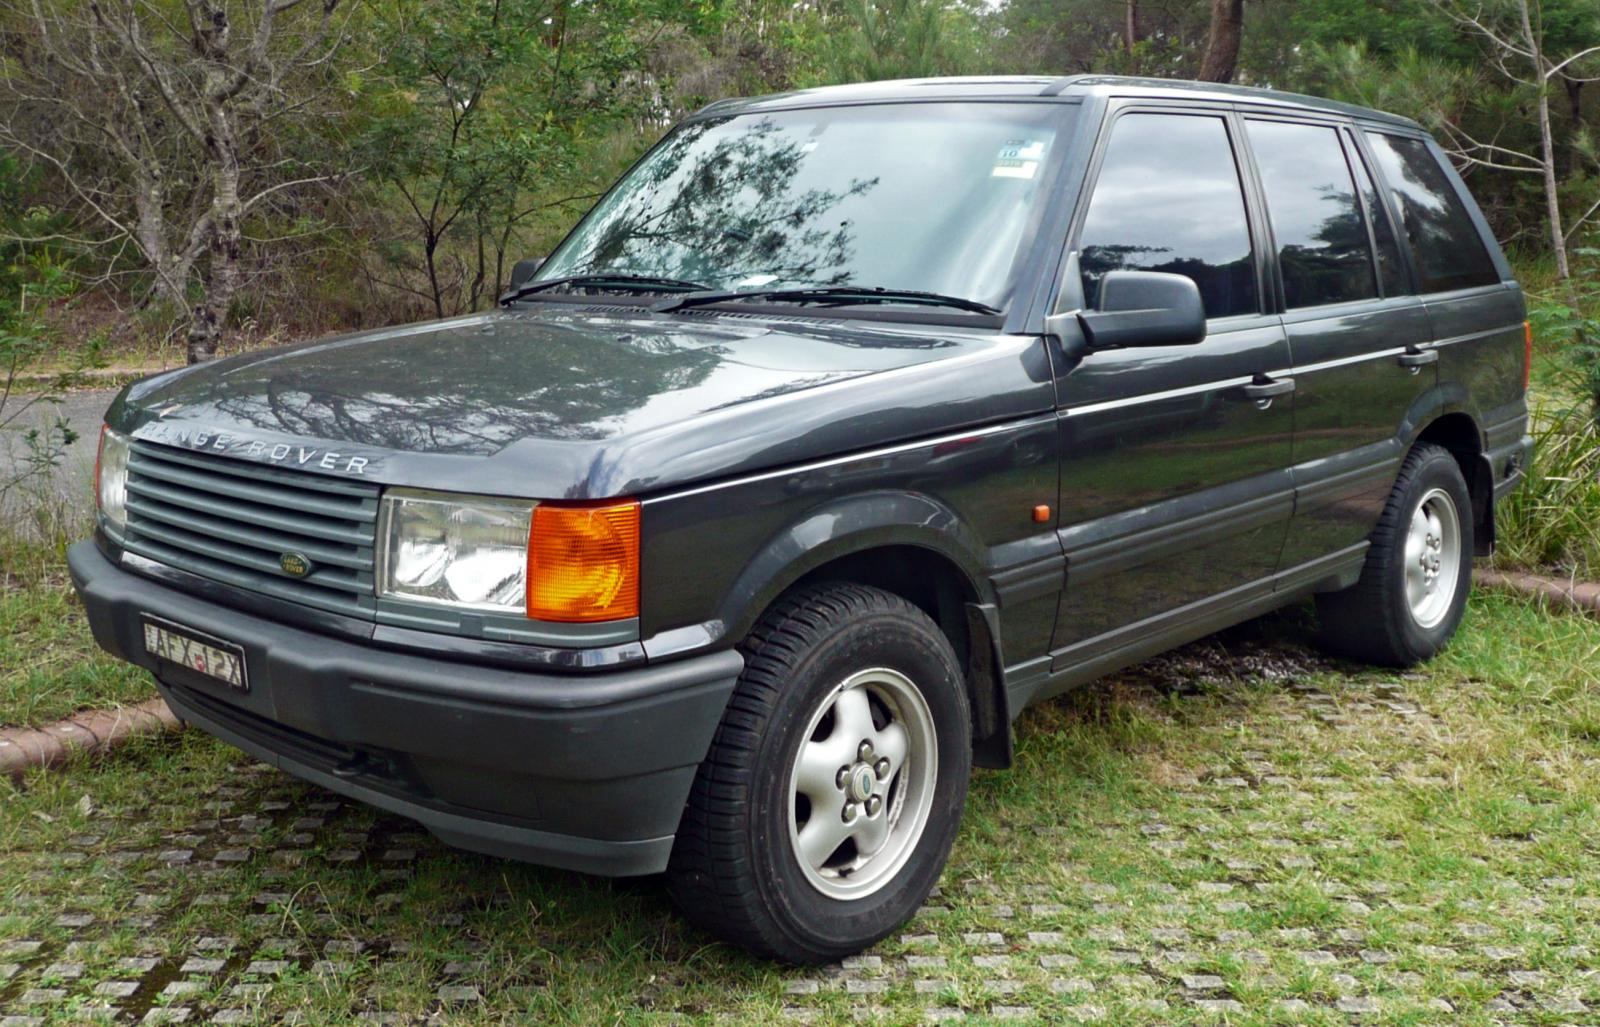 1998 Land Rover Discovery 50th Anniversary - 4dr SUV 4.0L ... |Red 1998 Land Rover